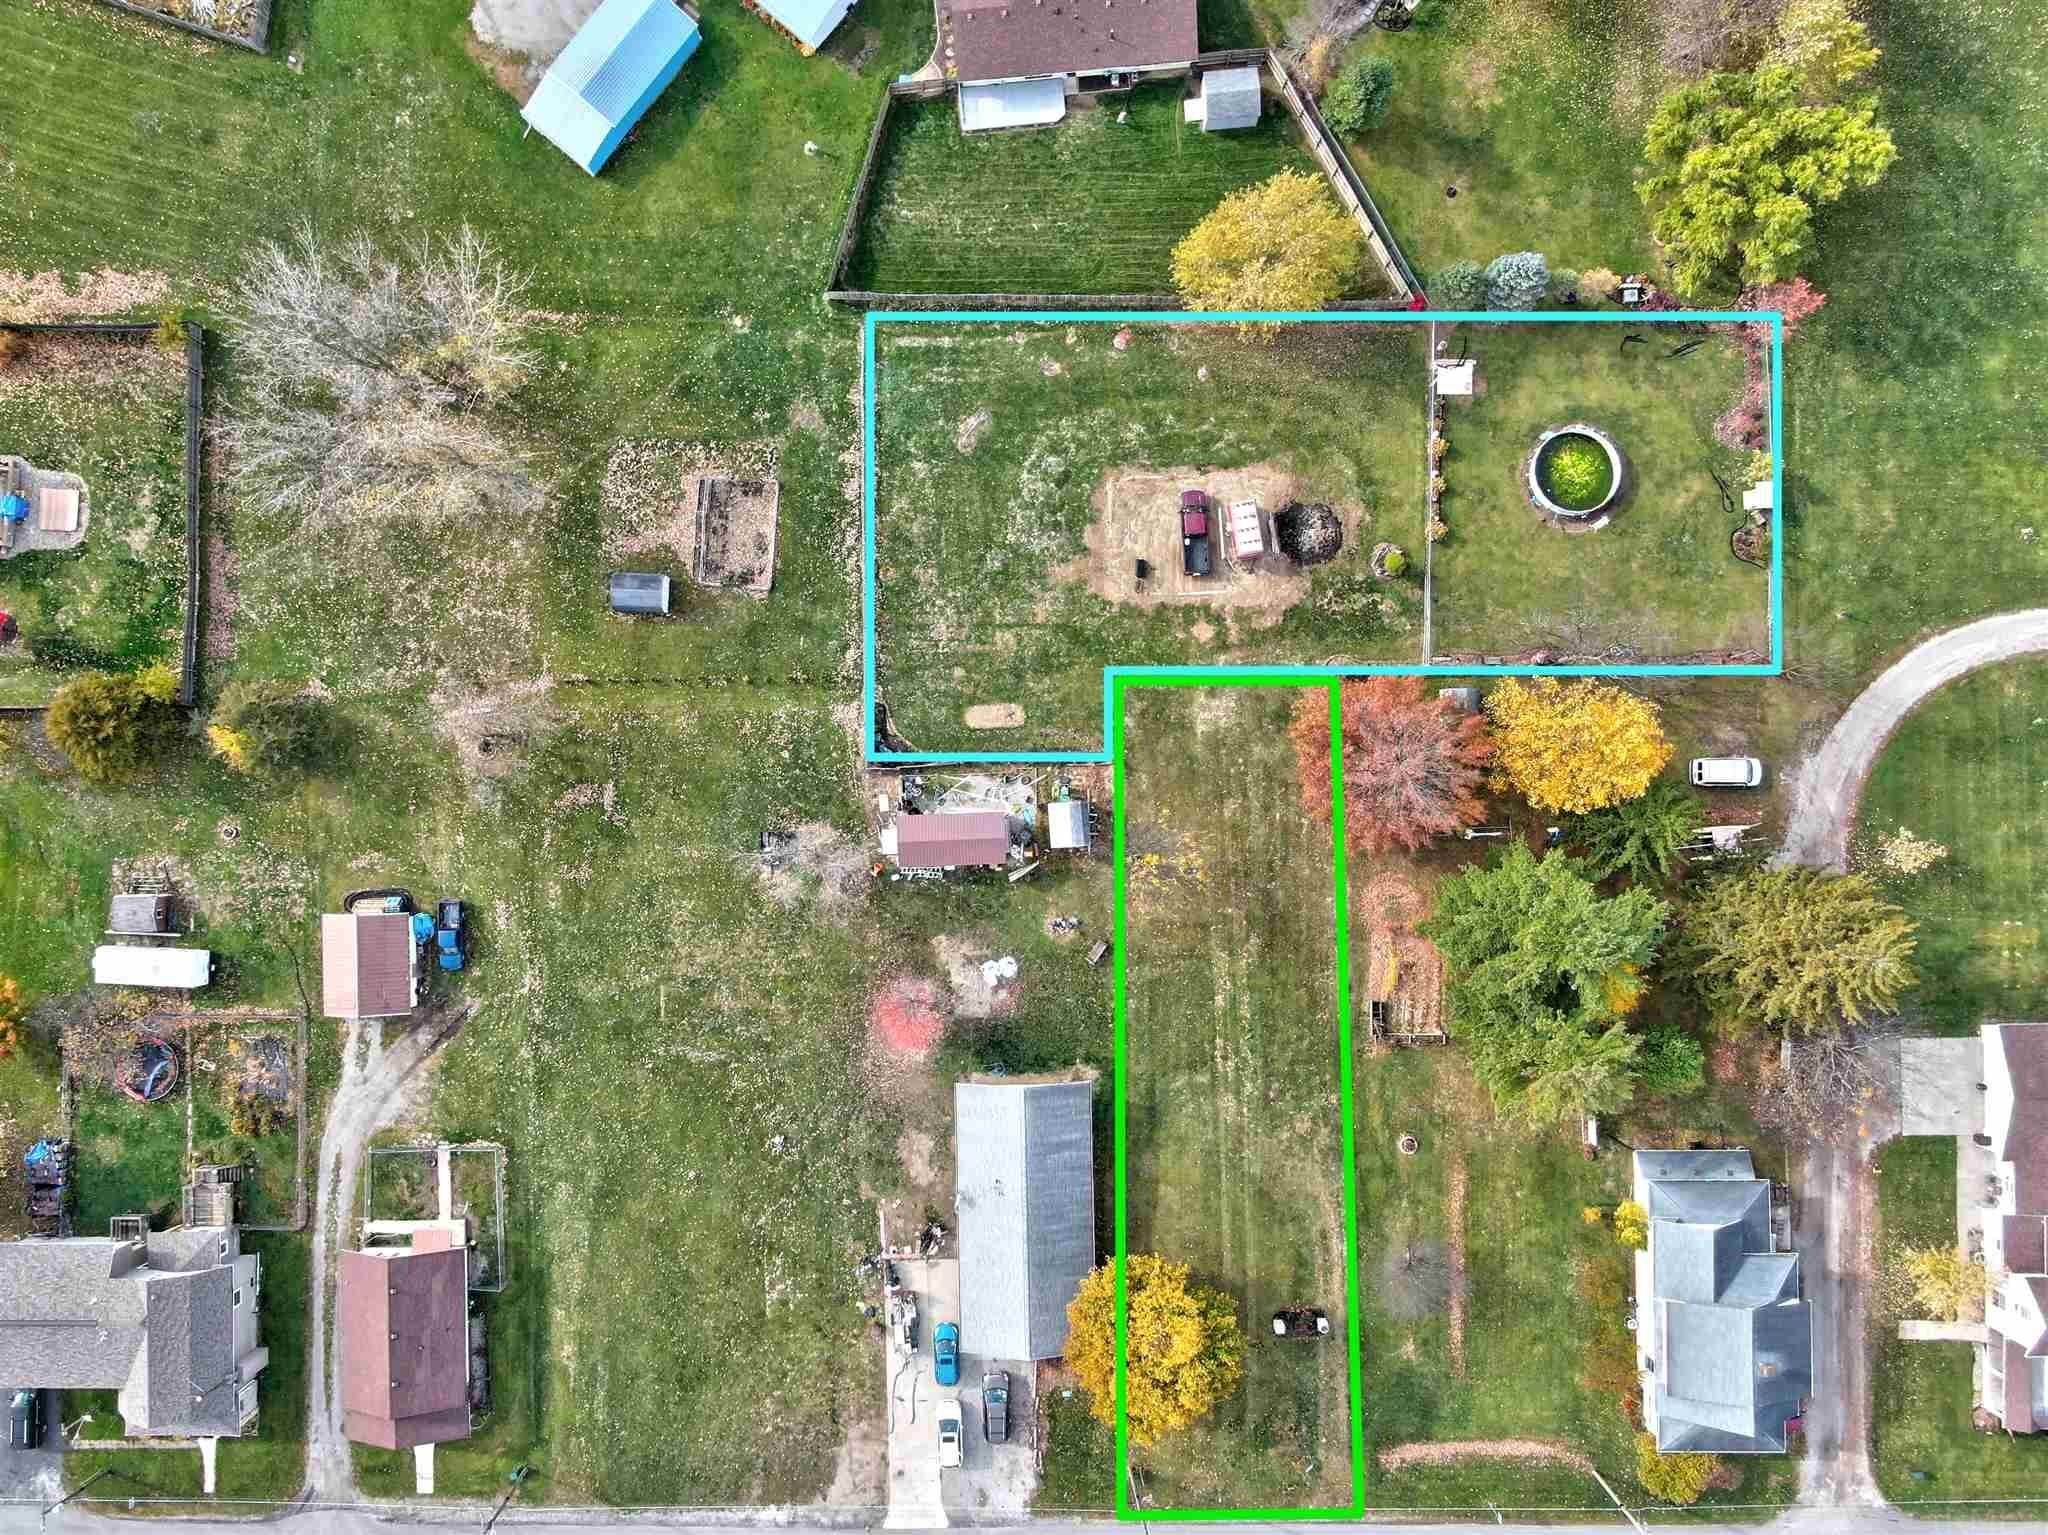 Residential Lots & Land for Sale at 816 N Randolph Street Garrett, Indiana 46738 United States